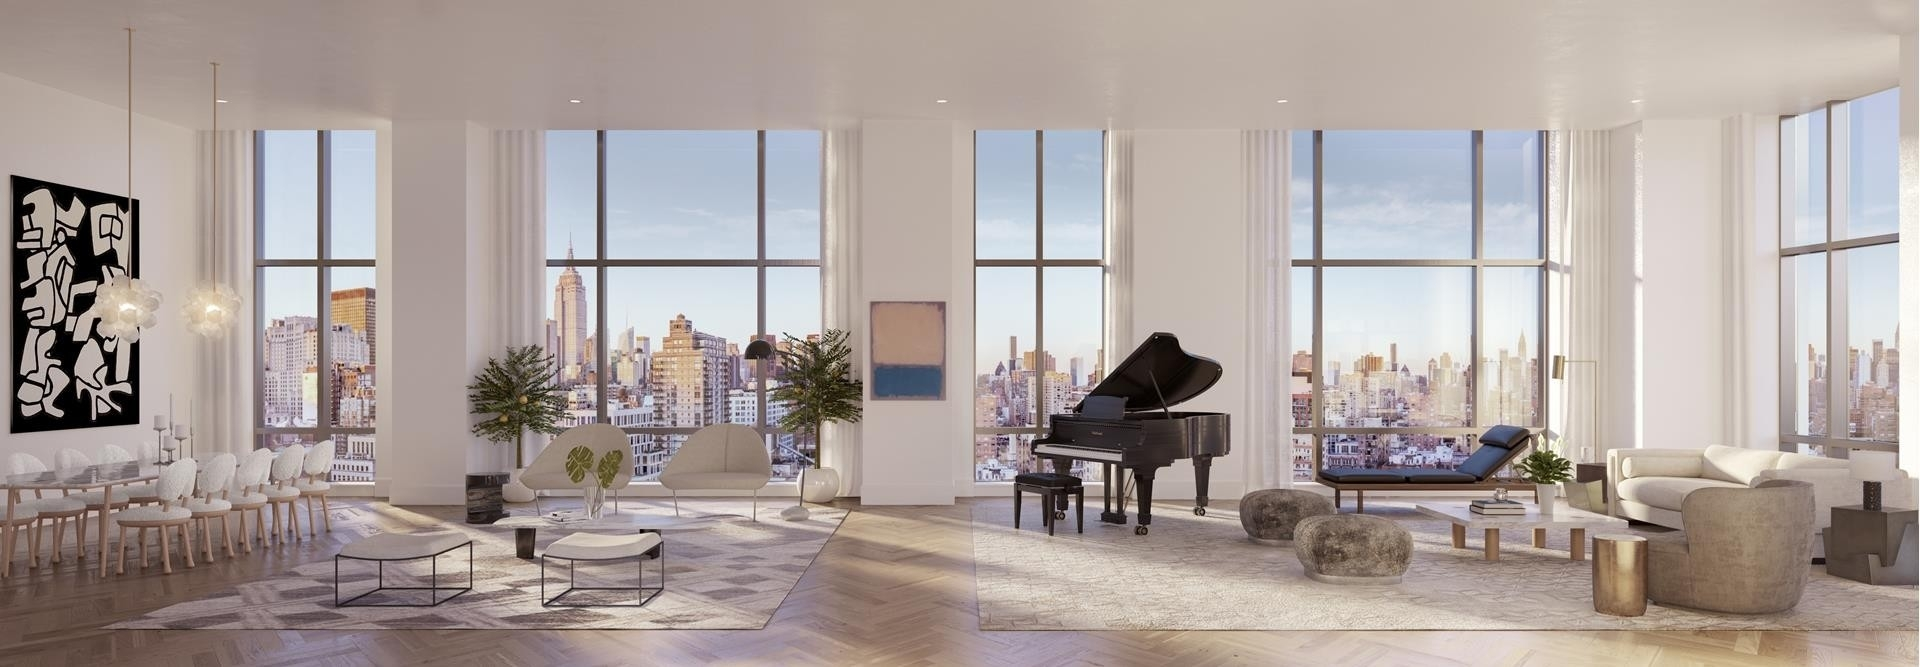 2. Condominiums for Sale at Gramercy Square, 215 East 19th St, 16C Gramercy Park, New York, NY 10003